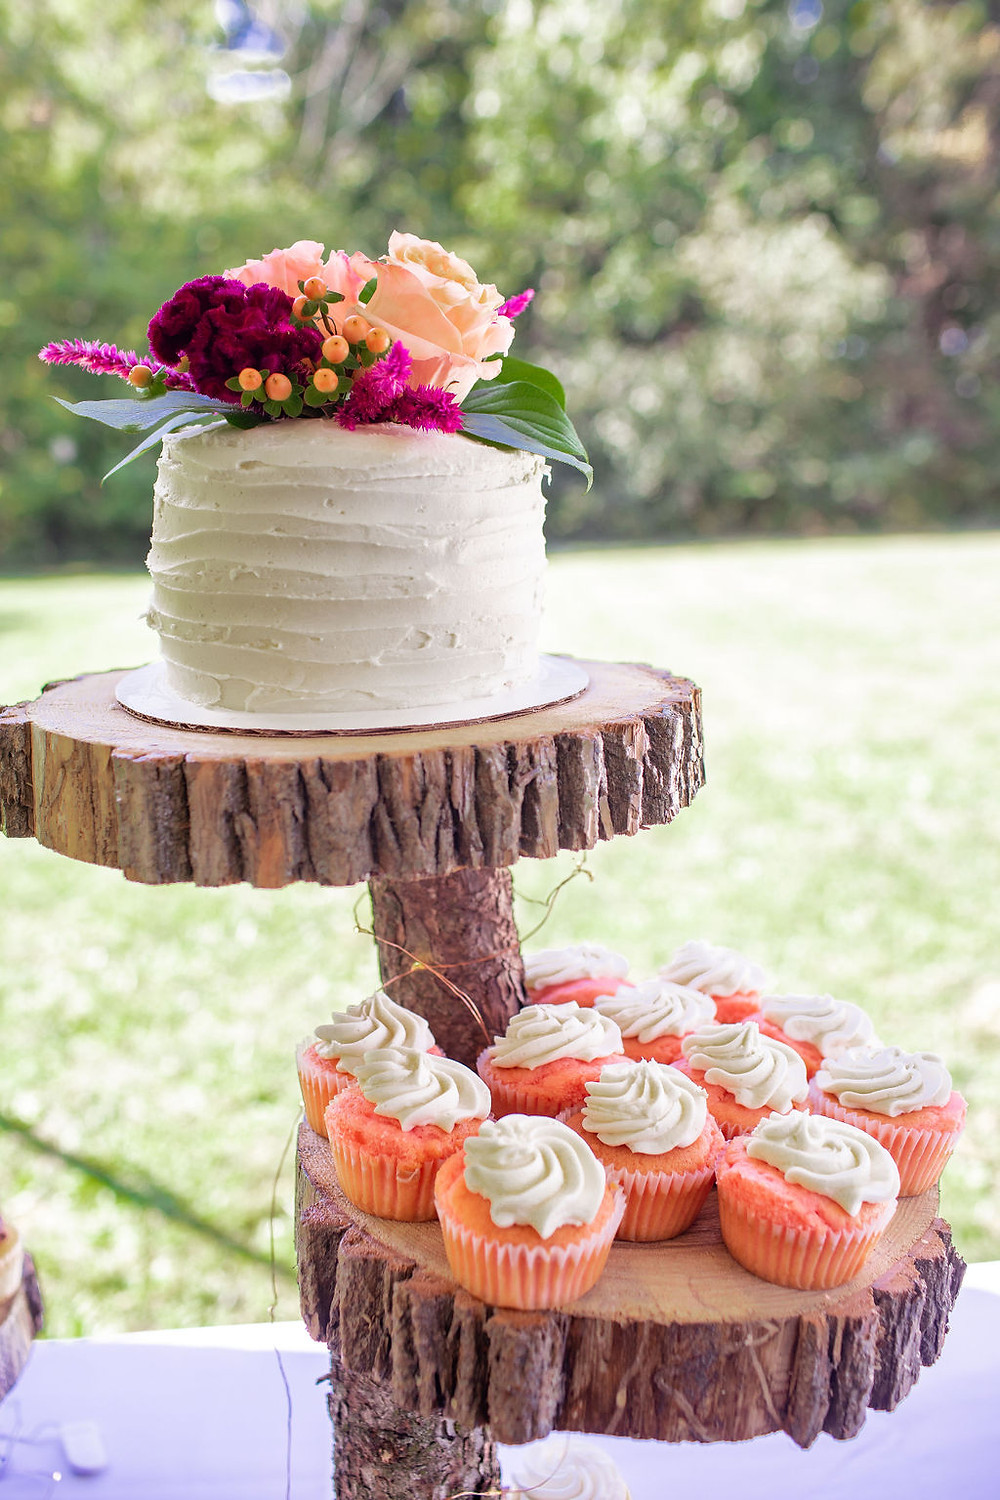 Small cutting cake and cupcakes for guests! Photo by Danie G. Moments.